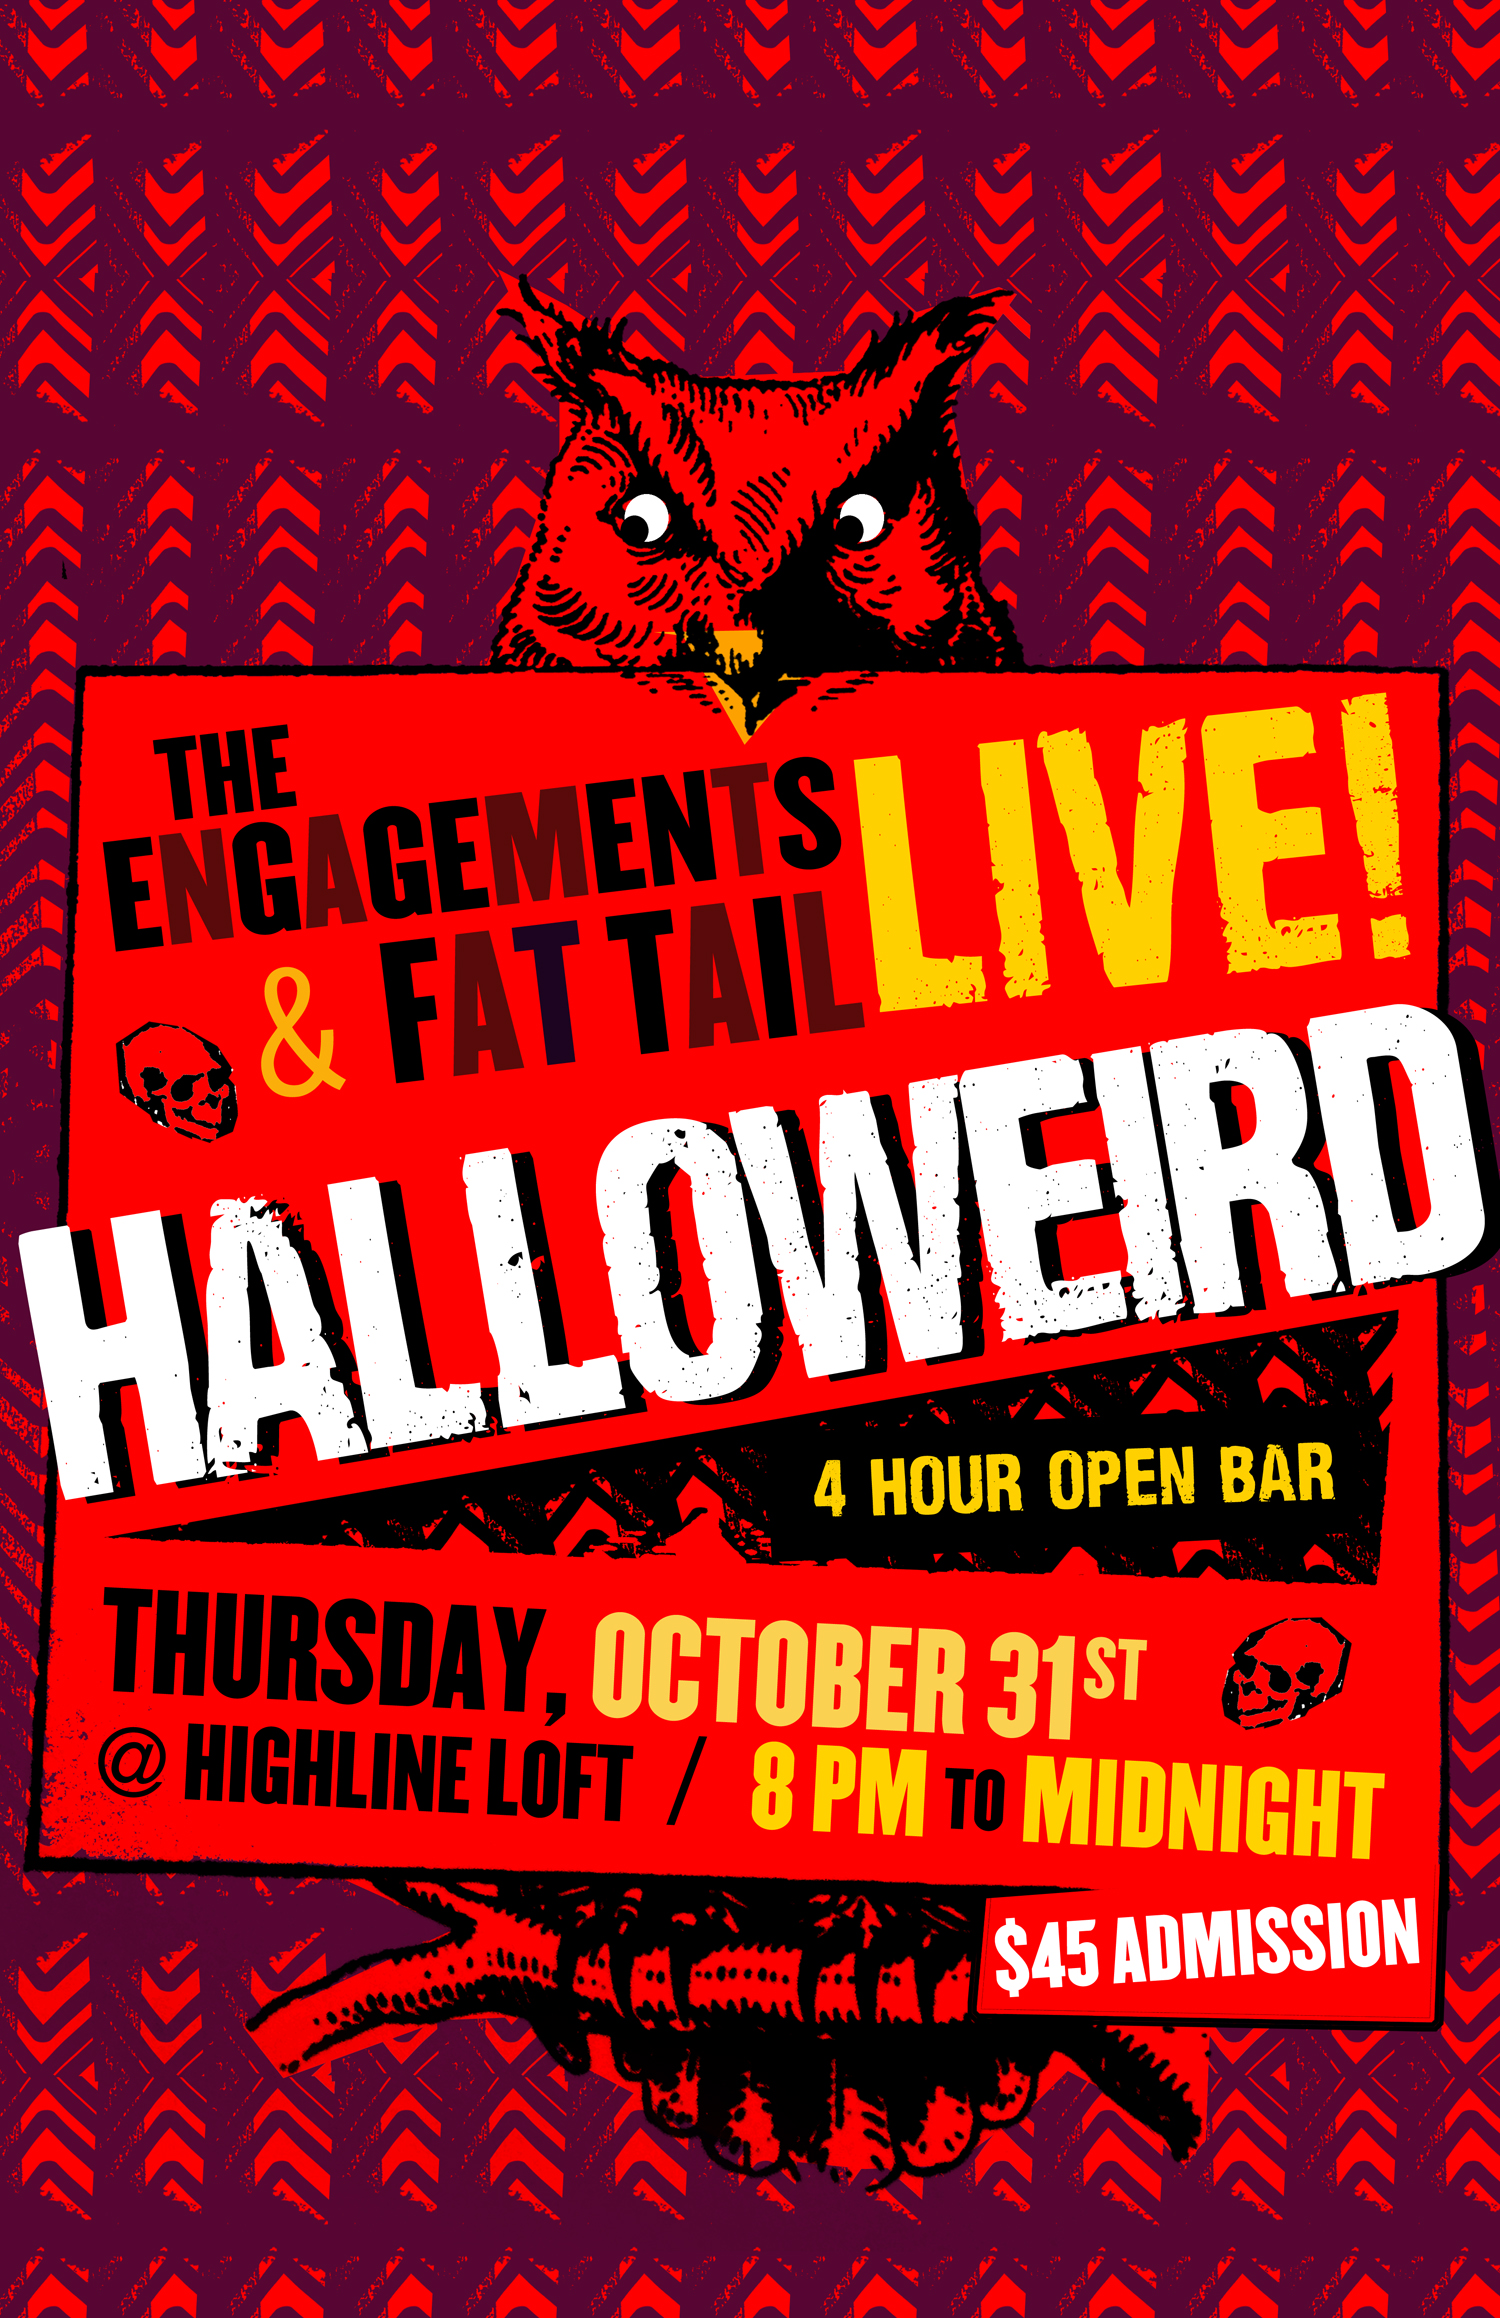 Halloween 80s Cover Band Dance Party | The Engagements